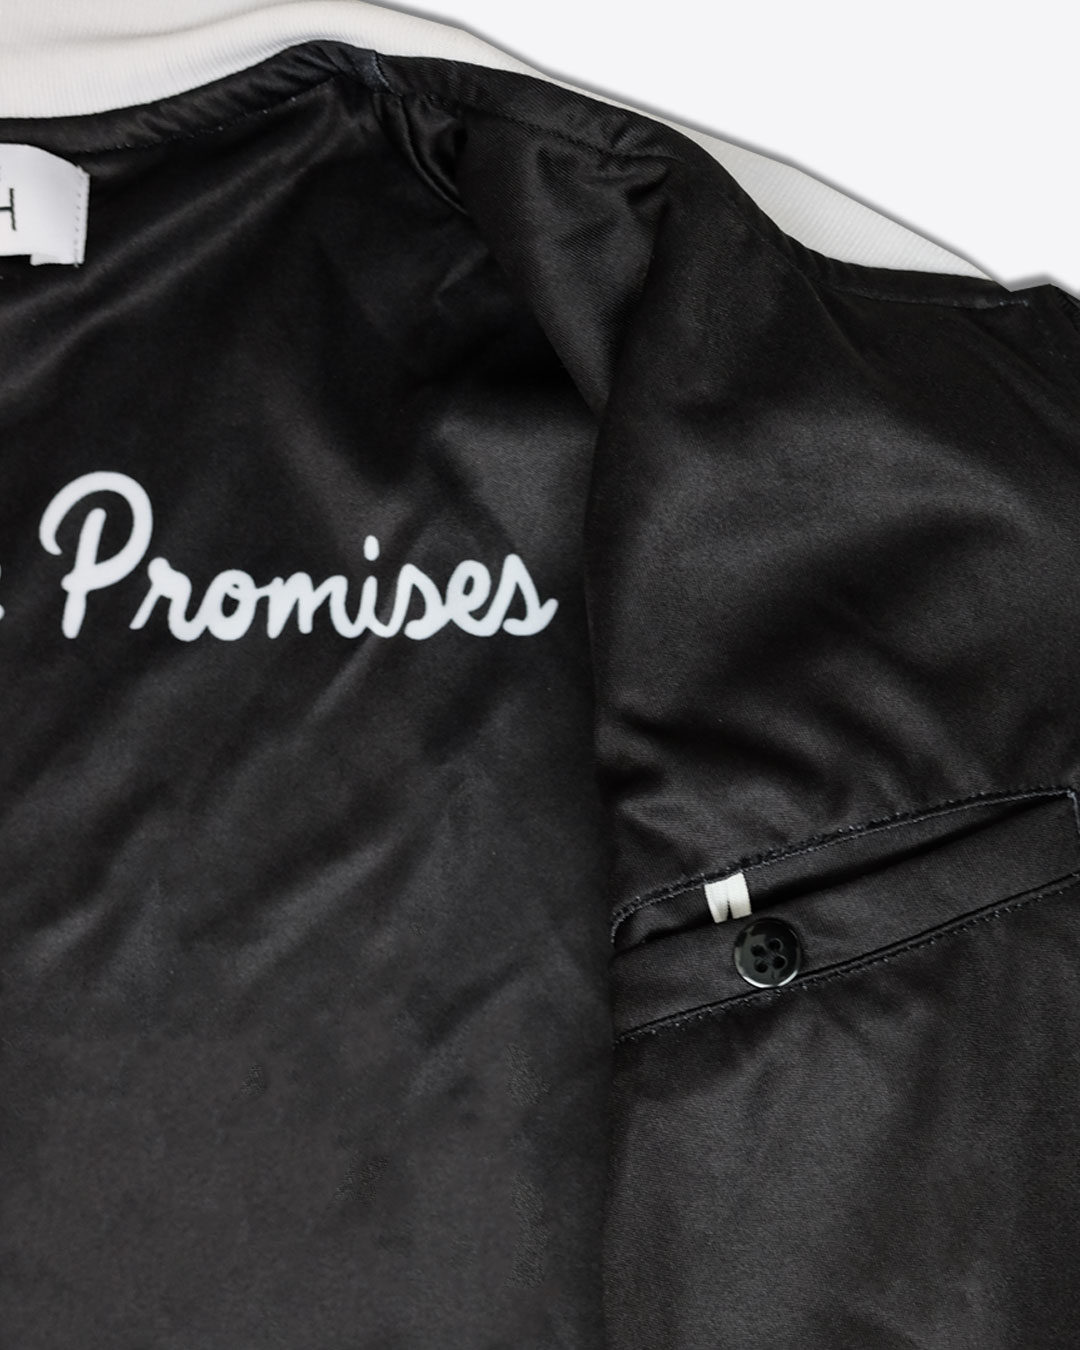 STANDING-ON-THE-PROMISE-photo7-URBANE-MUSE-CHRIS-SMITH-BOMBER-JACKET-with-Lining